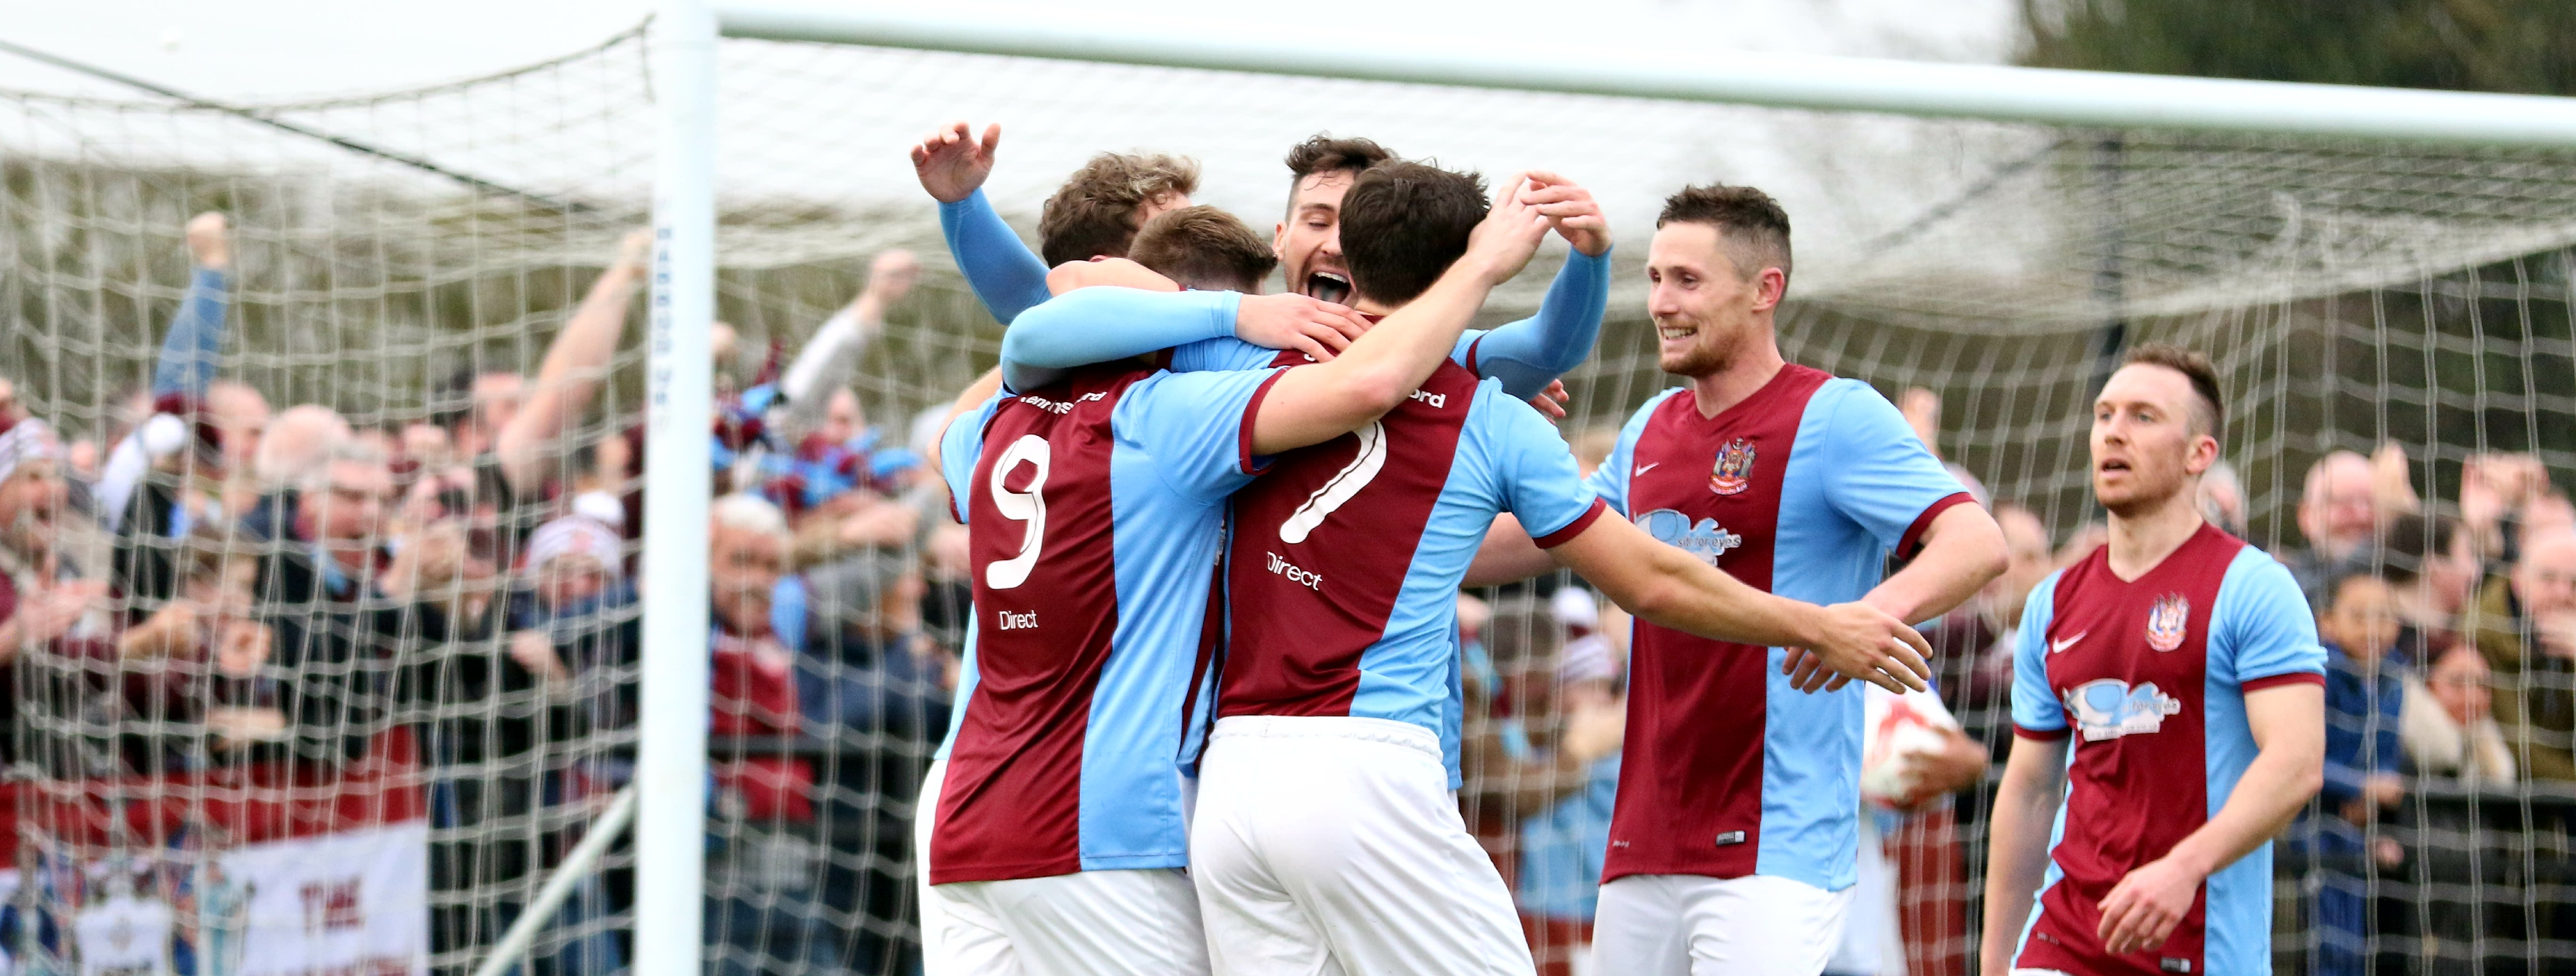 Durham Challenge Cup final preview: South Shields vs Billingham Synthonia